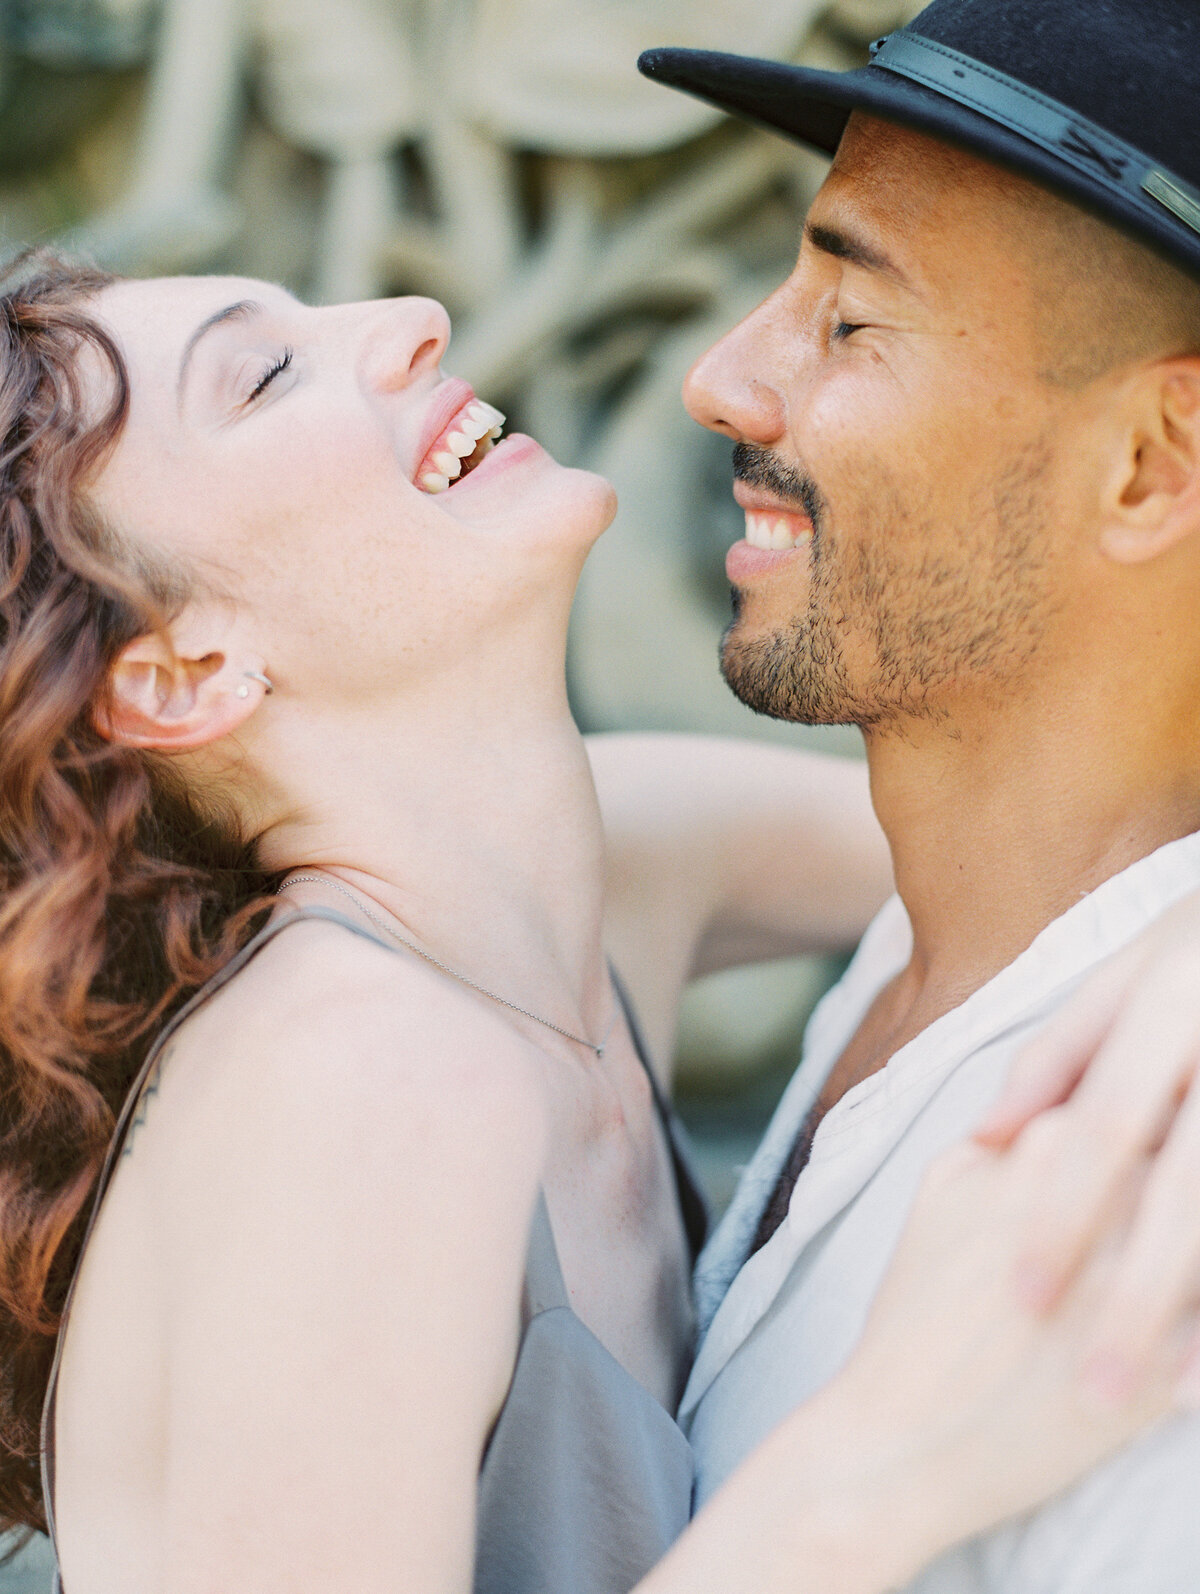 SALLYPINERAPHOTOGRAPHY_ANNABELLECARLOS_NYCENGAGEMENTPHOTOGRAPHY-110